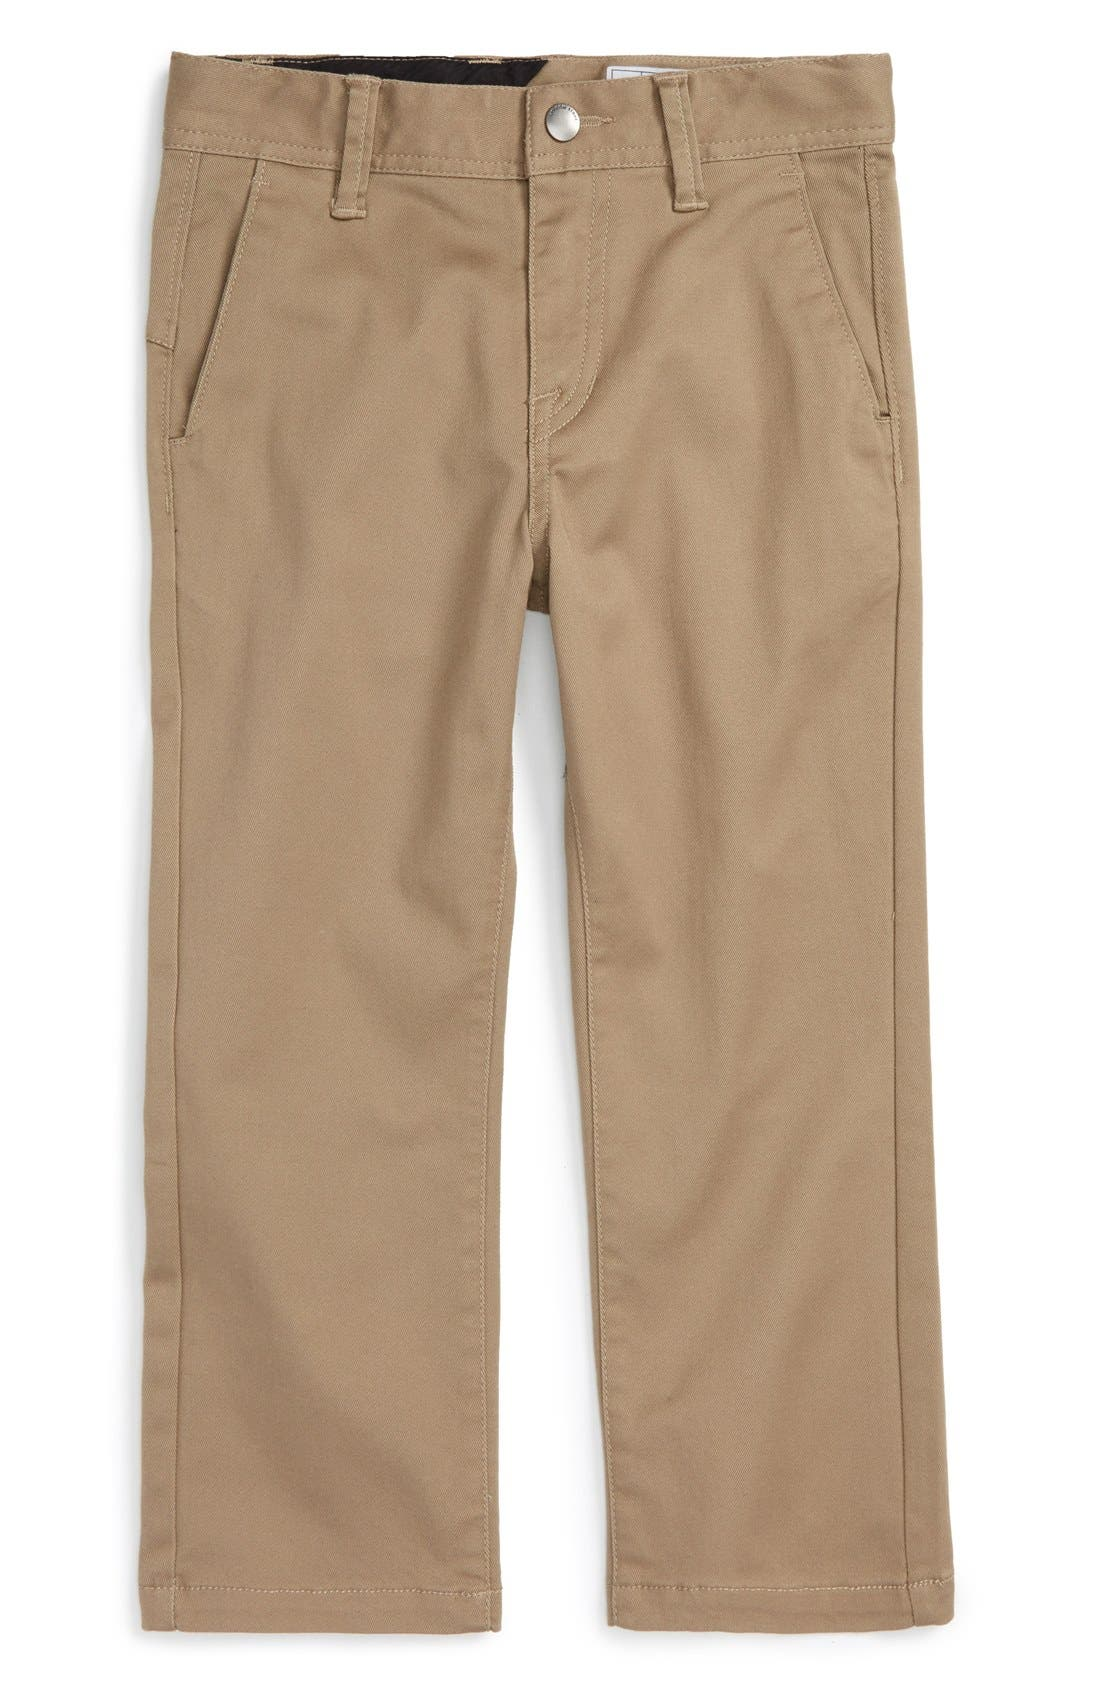 Alternate Image 1 Selected - Volcom Modern Stretch Chinos (Toddler Boys & Little Boys)